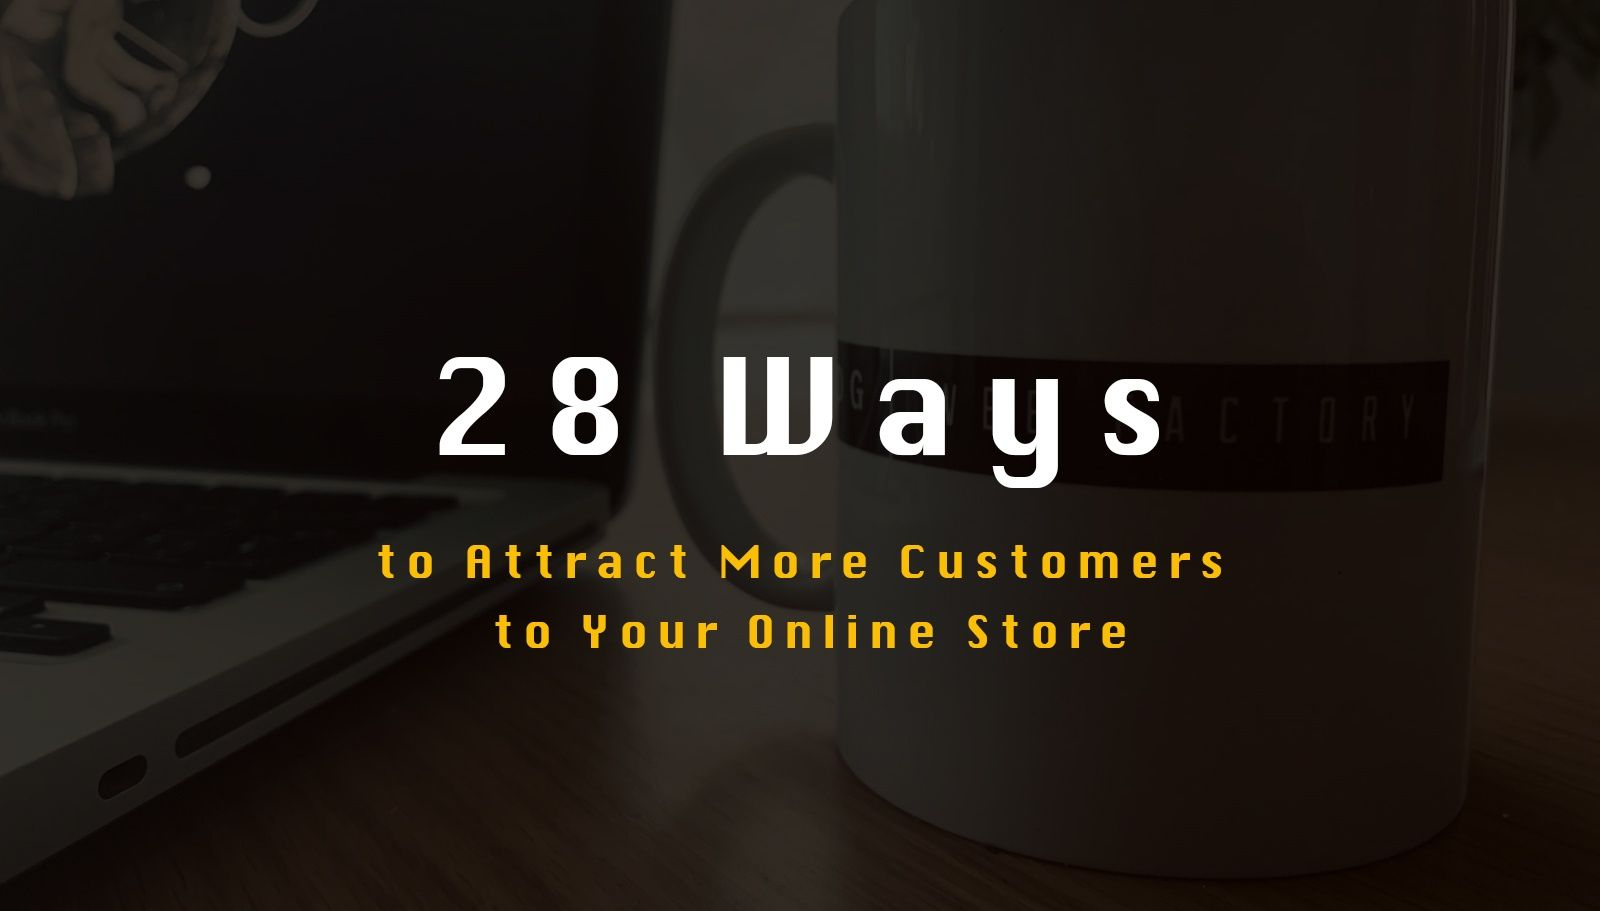 28 Ways to Attract More Customers to an Online Store